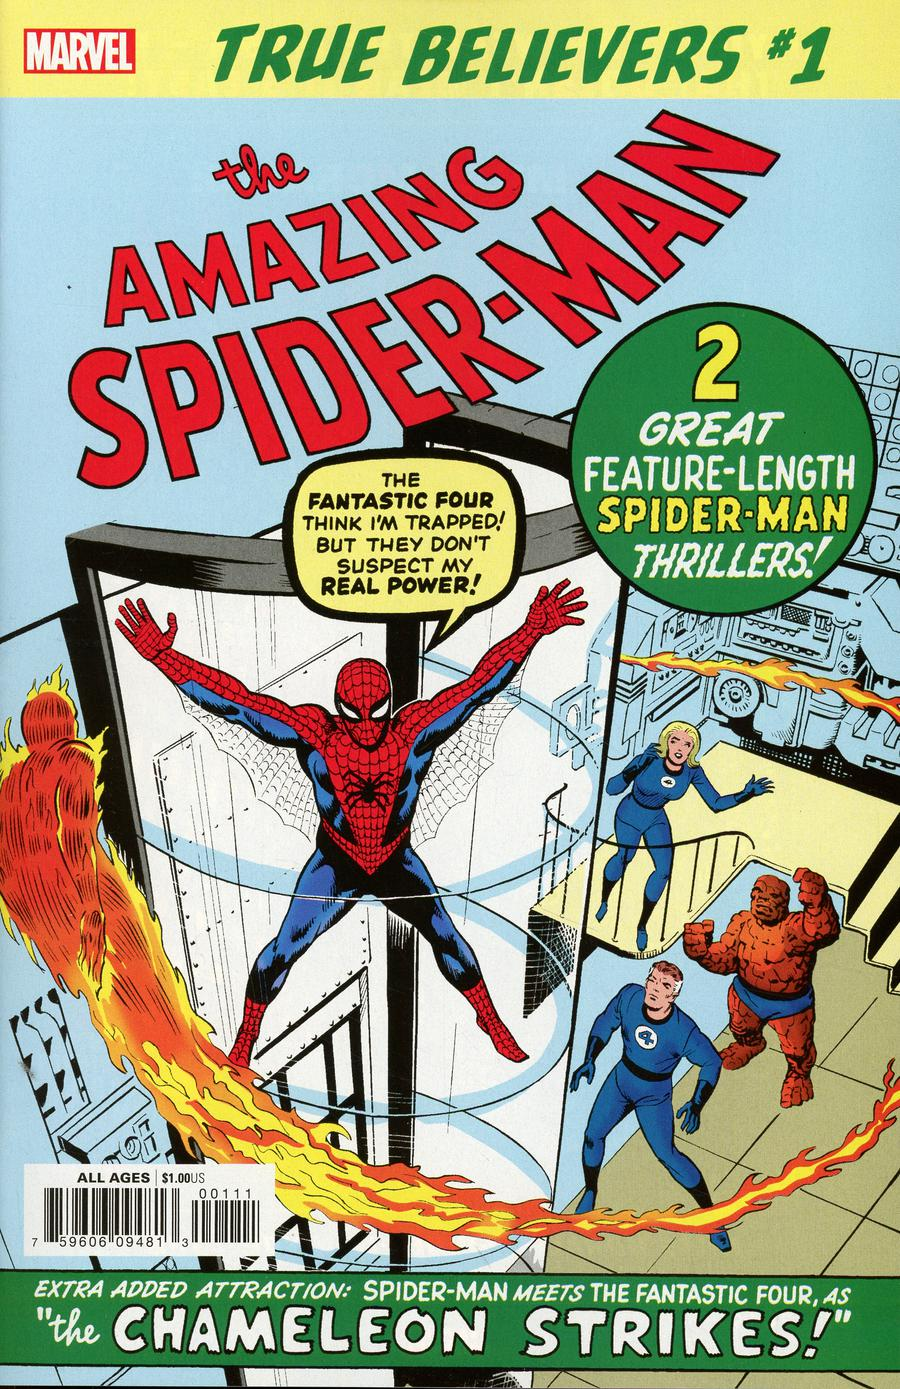 True Believers Amazing Spider-Man #1 (Reprint)